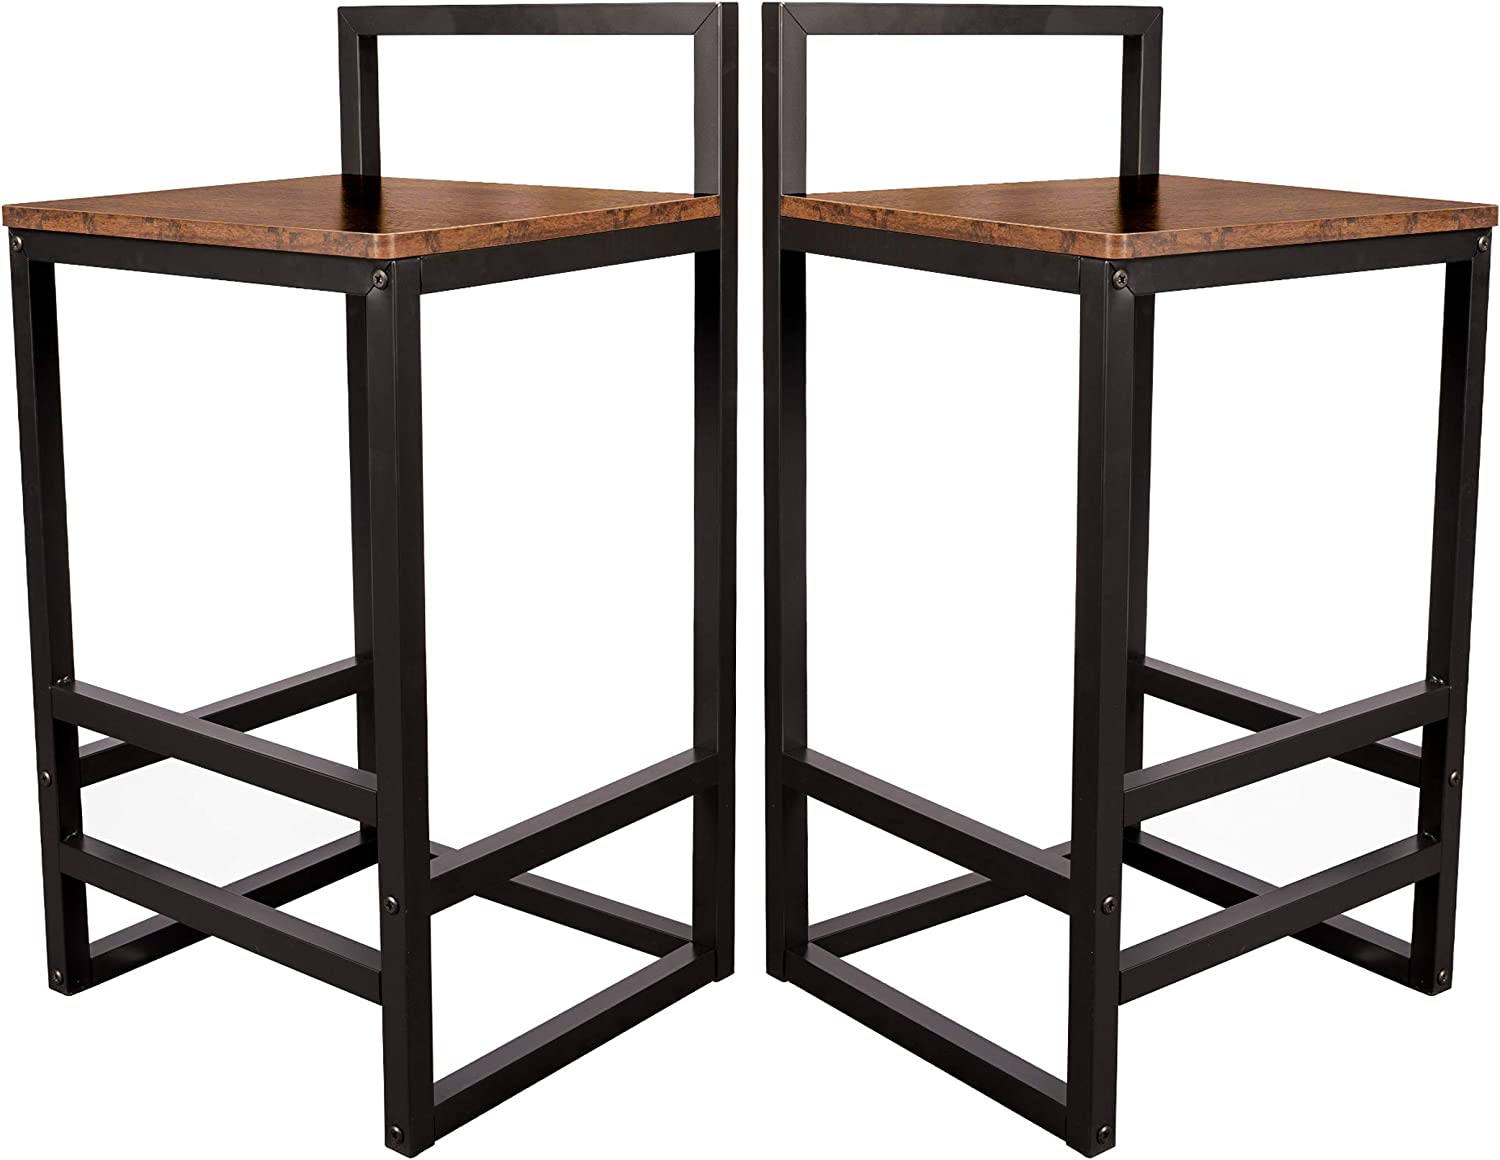 Becko US Barstools Set of 2 Bar Stool Chairs with Metal Low Backrest and Footrests, Easy Assembly, Industrial Vintage Style in Living Room, Kitchen, Party Room (Rustic Brown)